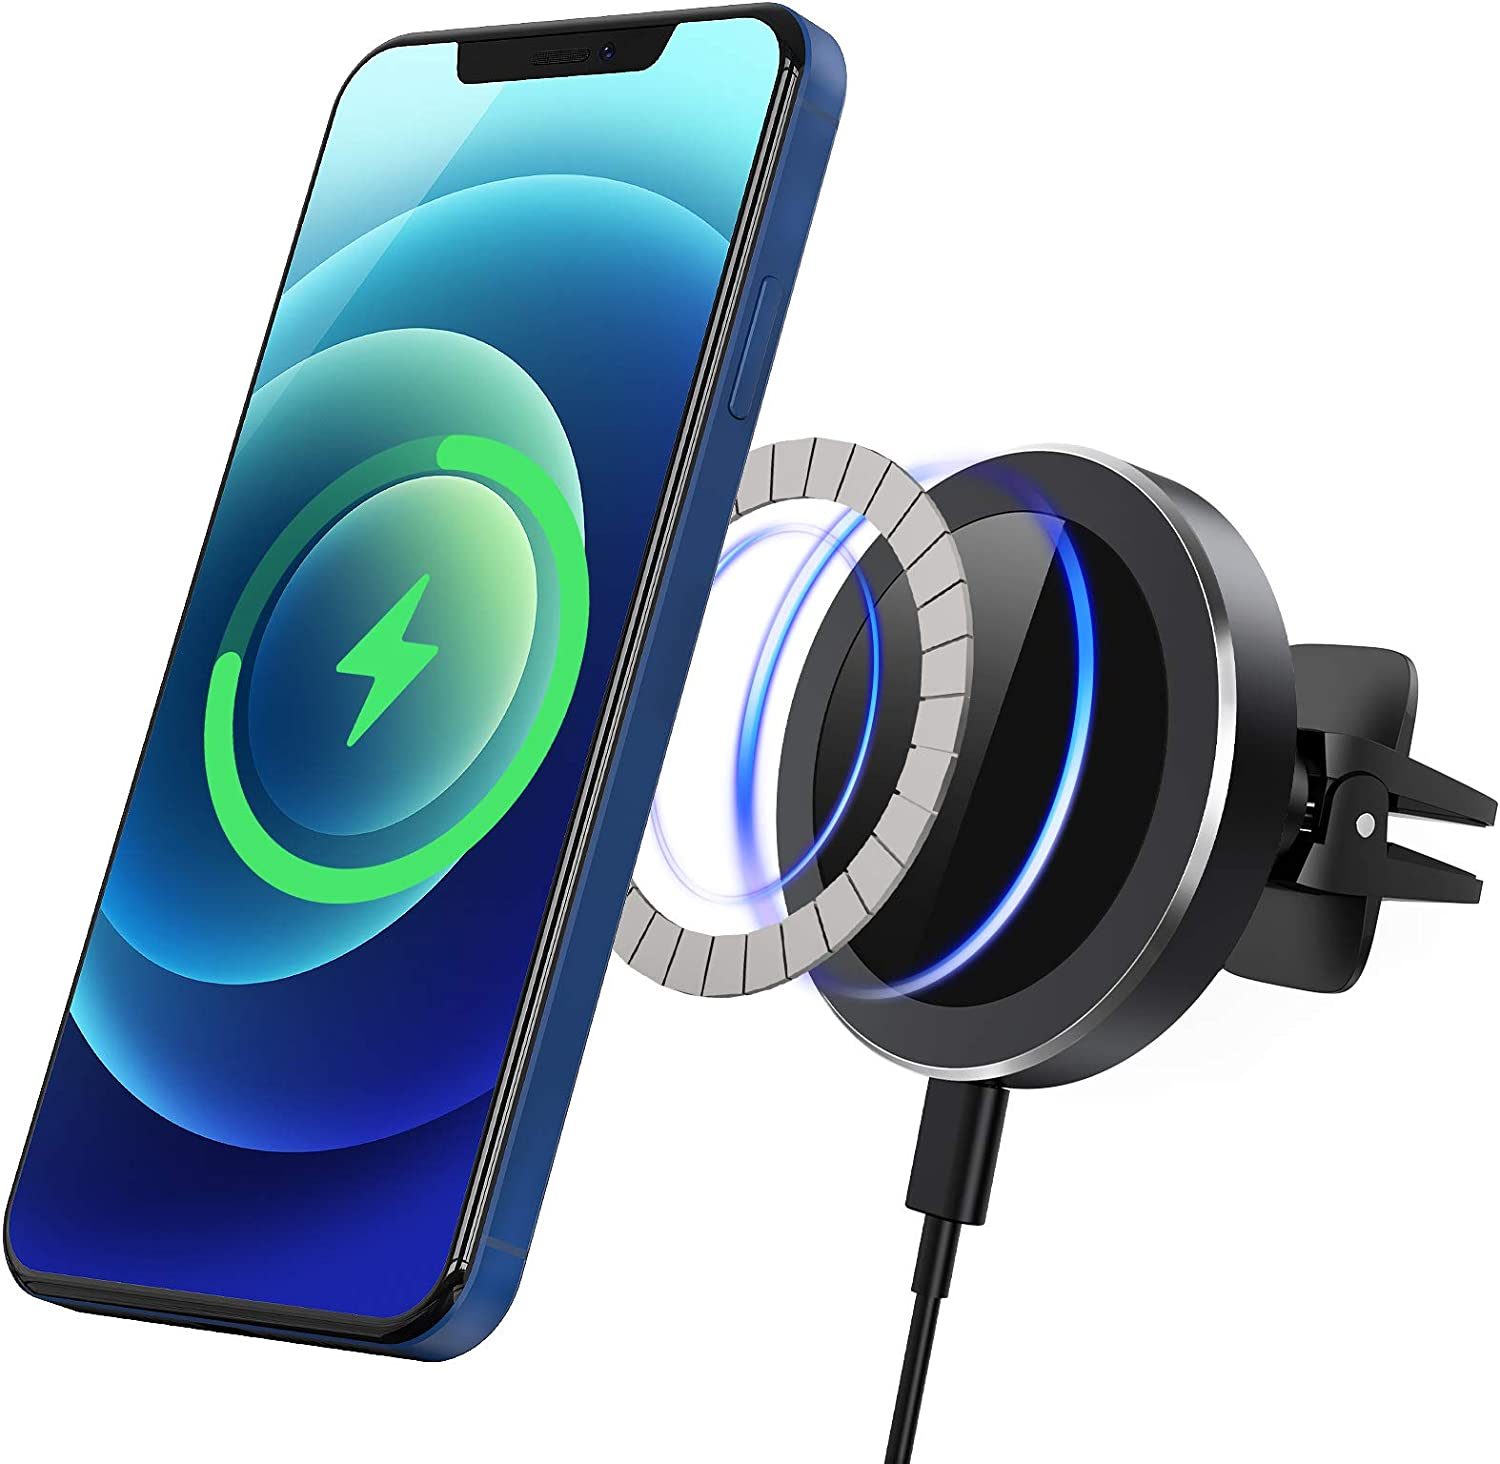 QI-EU Magnetic Wireless Car Charger, 15W Car Phone Mount Auto-Clamping Air Vent Holder, Fast Charging Stand for iPhone 12/12 Pro/Pro Max/12 Mini/X/XR/11/11 Pro Max/11 Pro/8 (with Magnet Sticker)